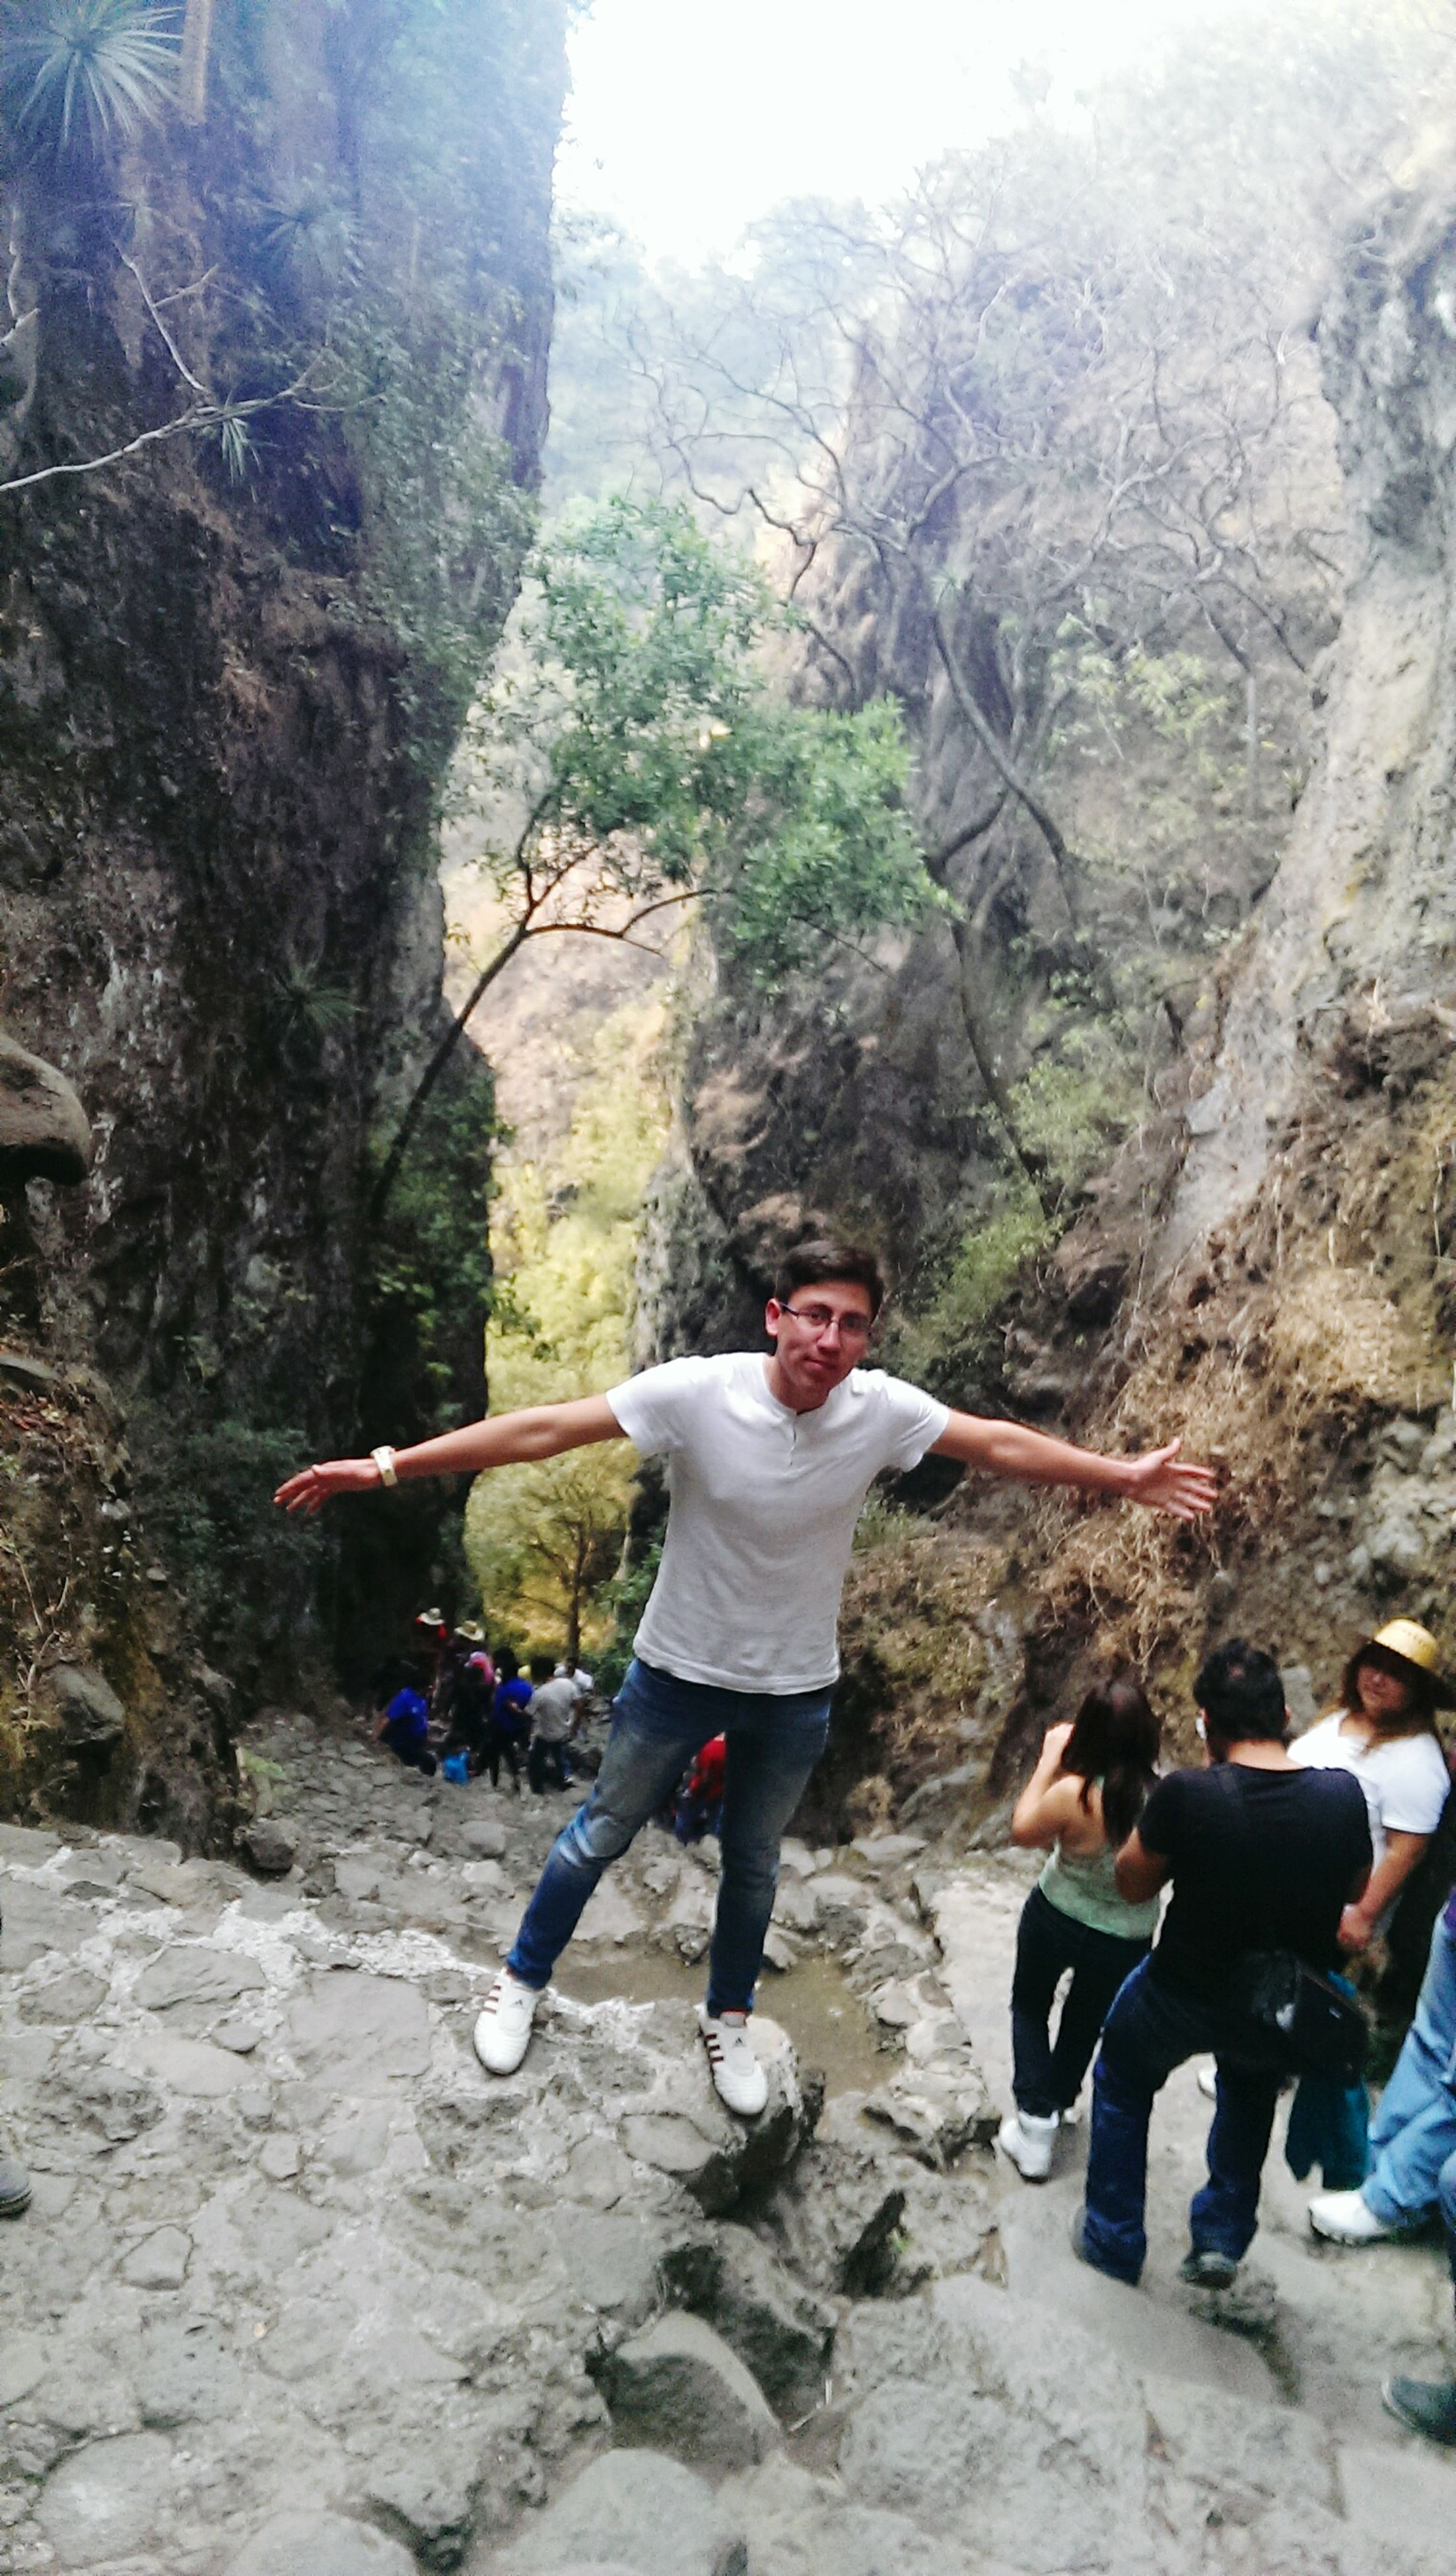 lifestyles, leisure activity, casual clothing, full length, tree, men, person, tourist, travel, rock - object, day, rear view, standing, vacations, tourism, outdoors, nature, walking